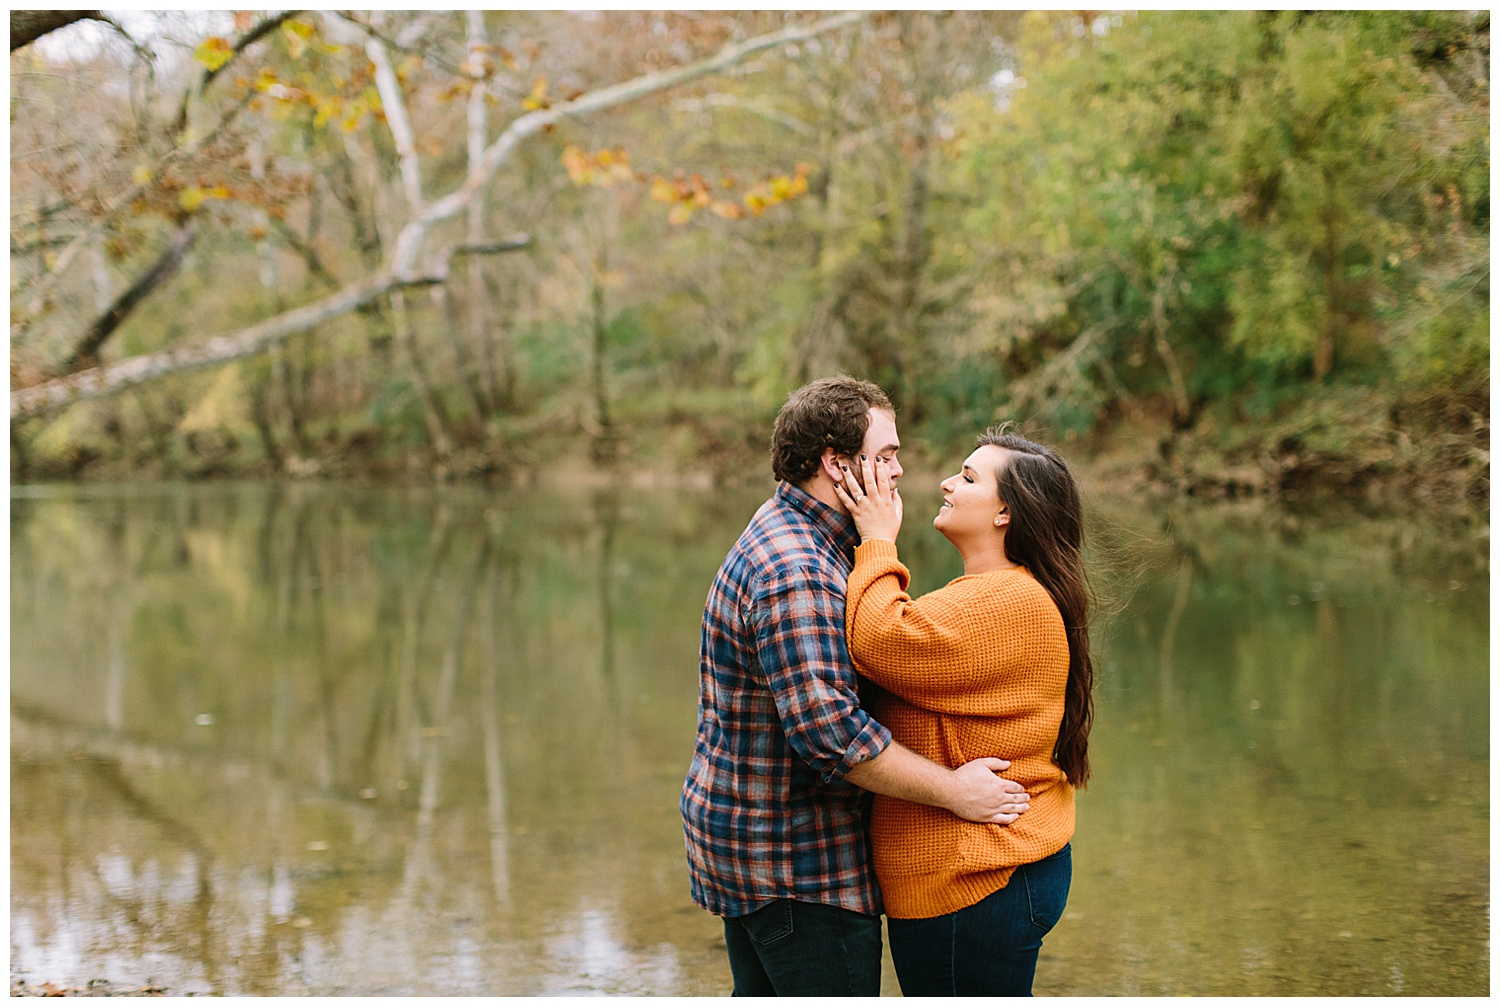 trent.and.kendra.photography.beckley.creek.park-3.jpg